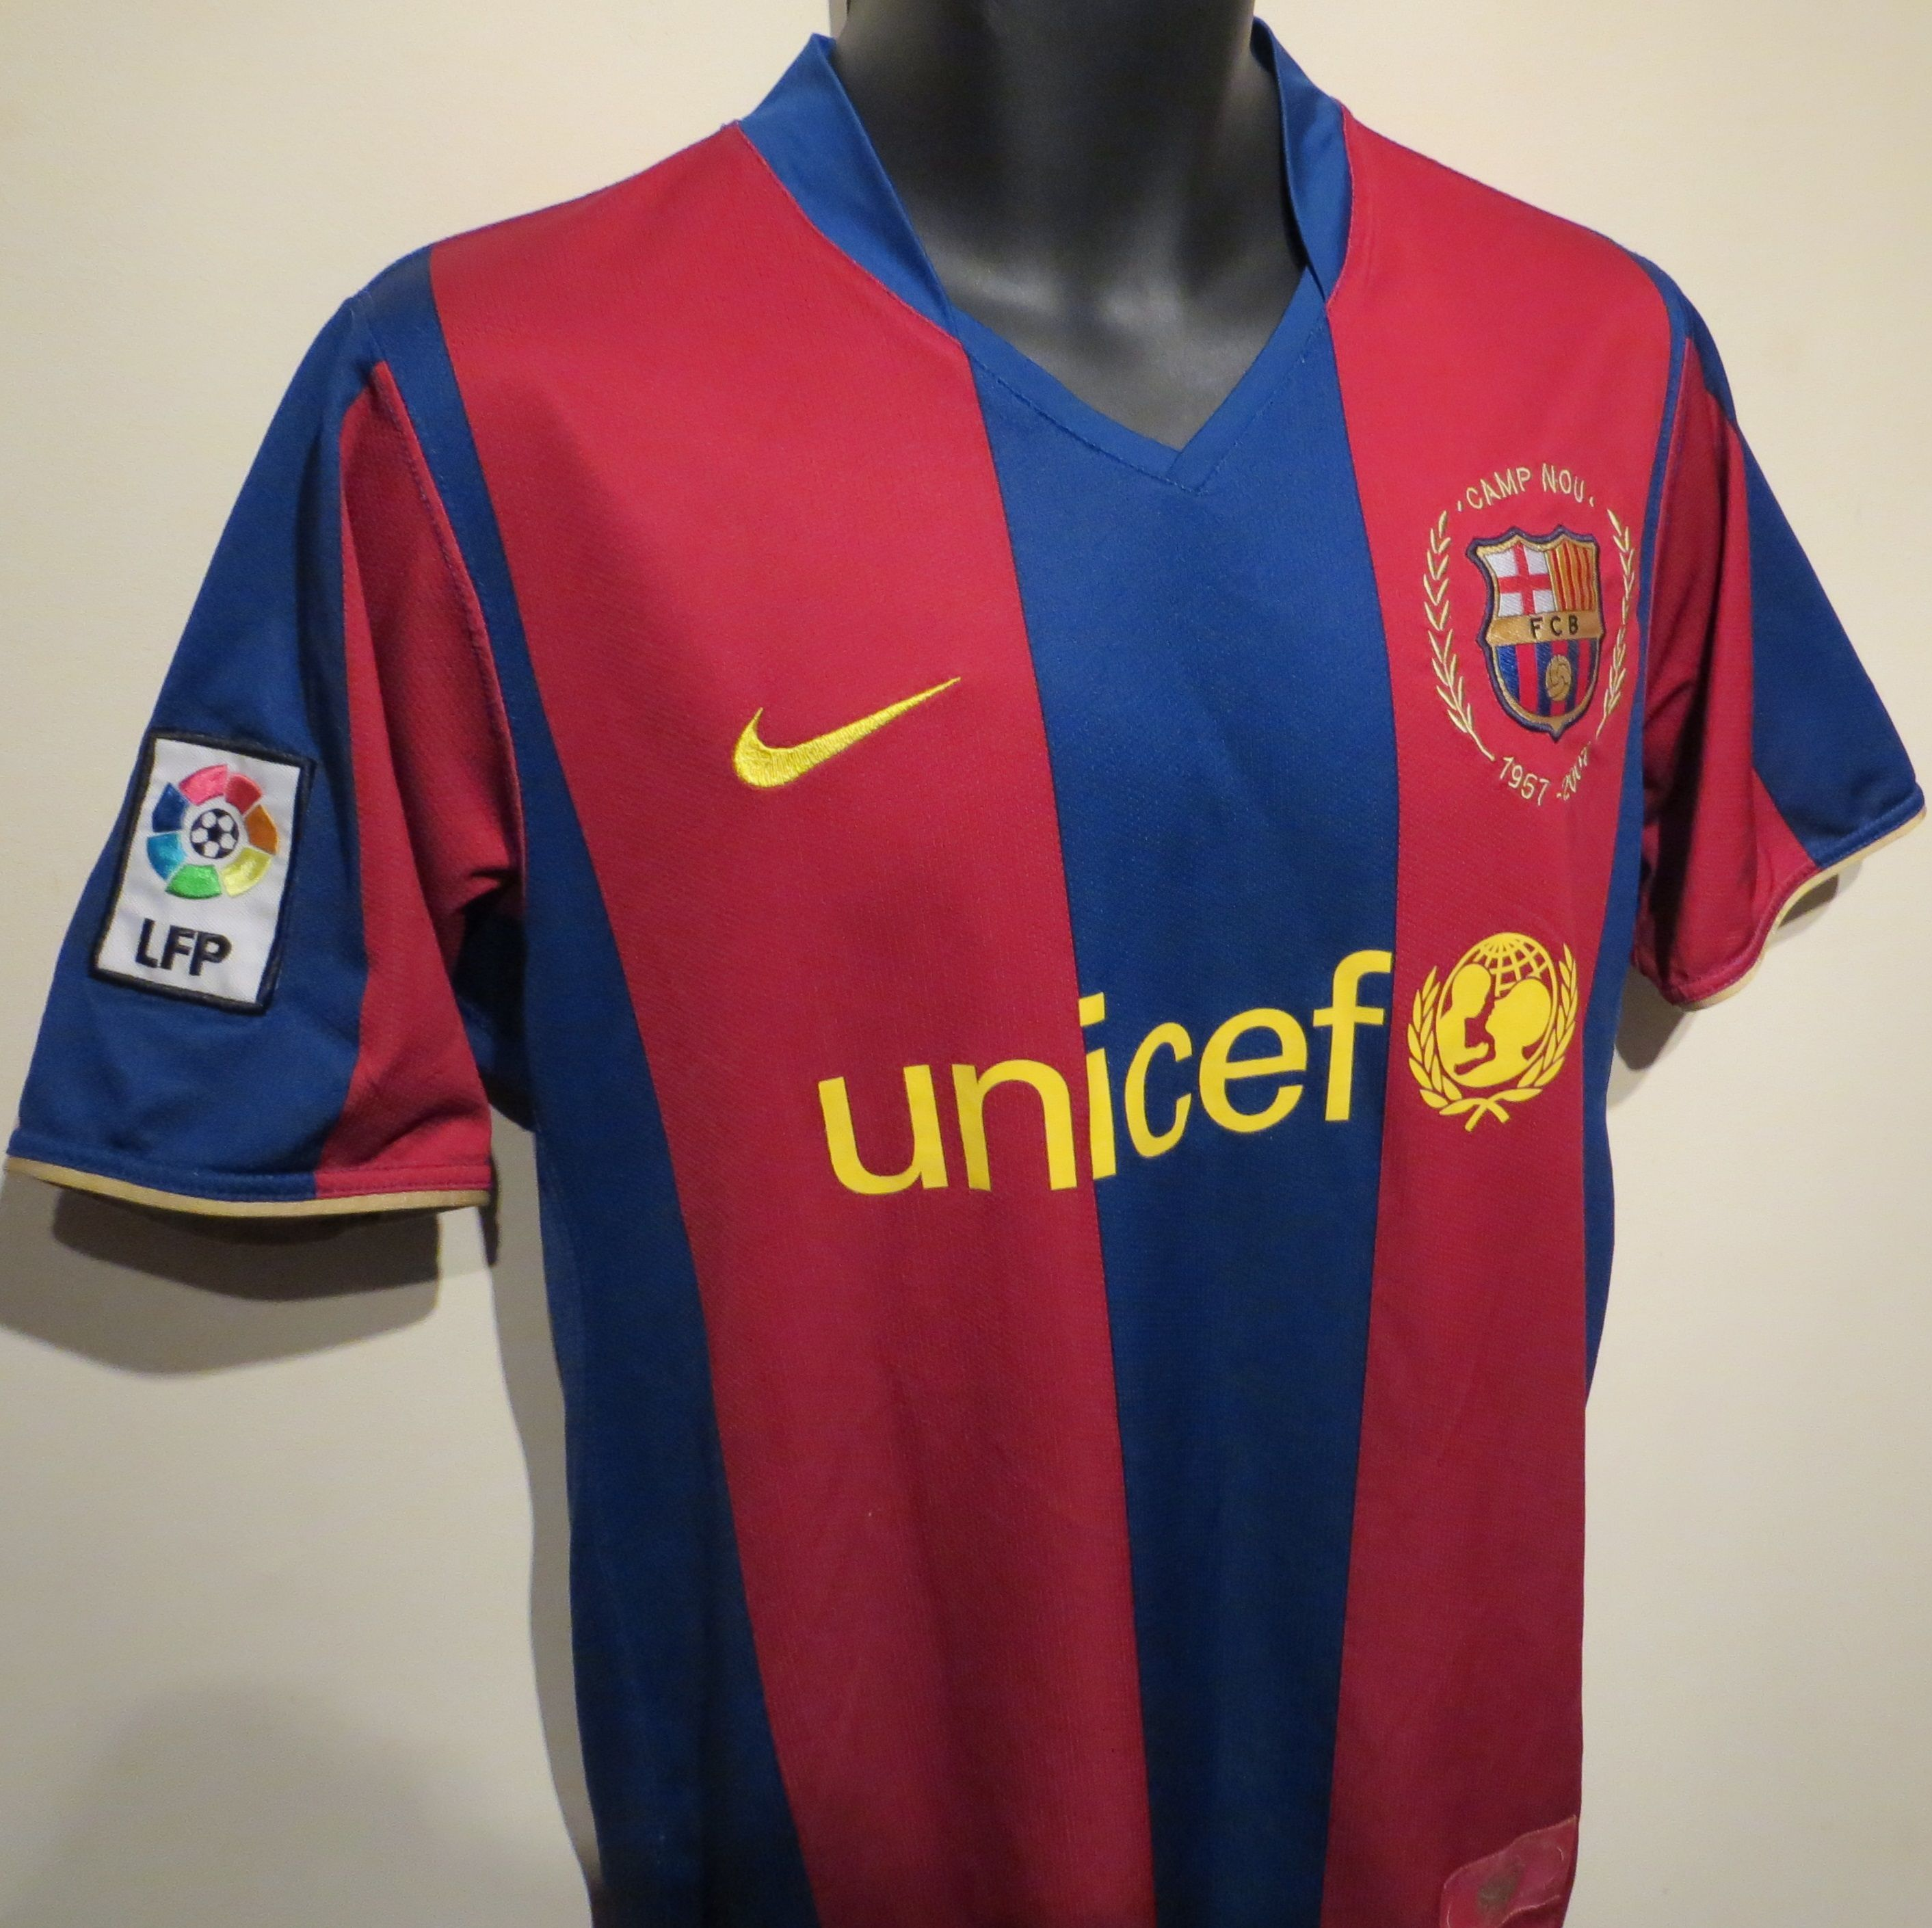 3c5fdaff7 FC Barcelona  50 Years NOU CAMP  home shirt by Nike.  Barca